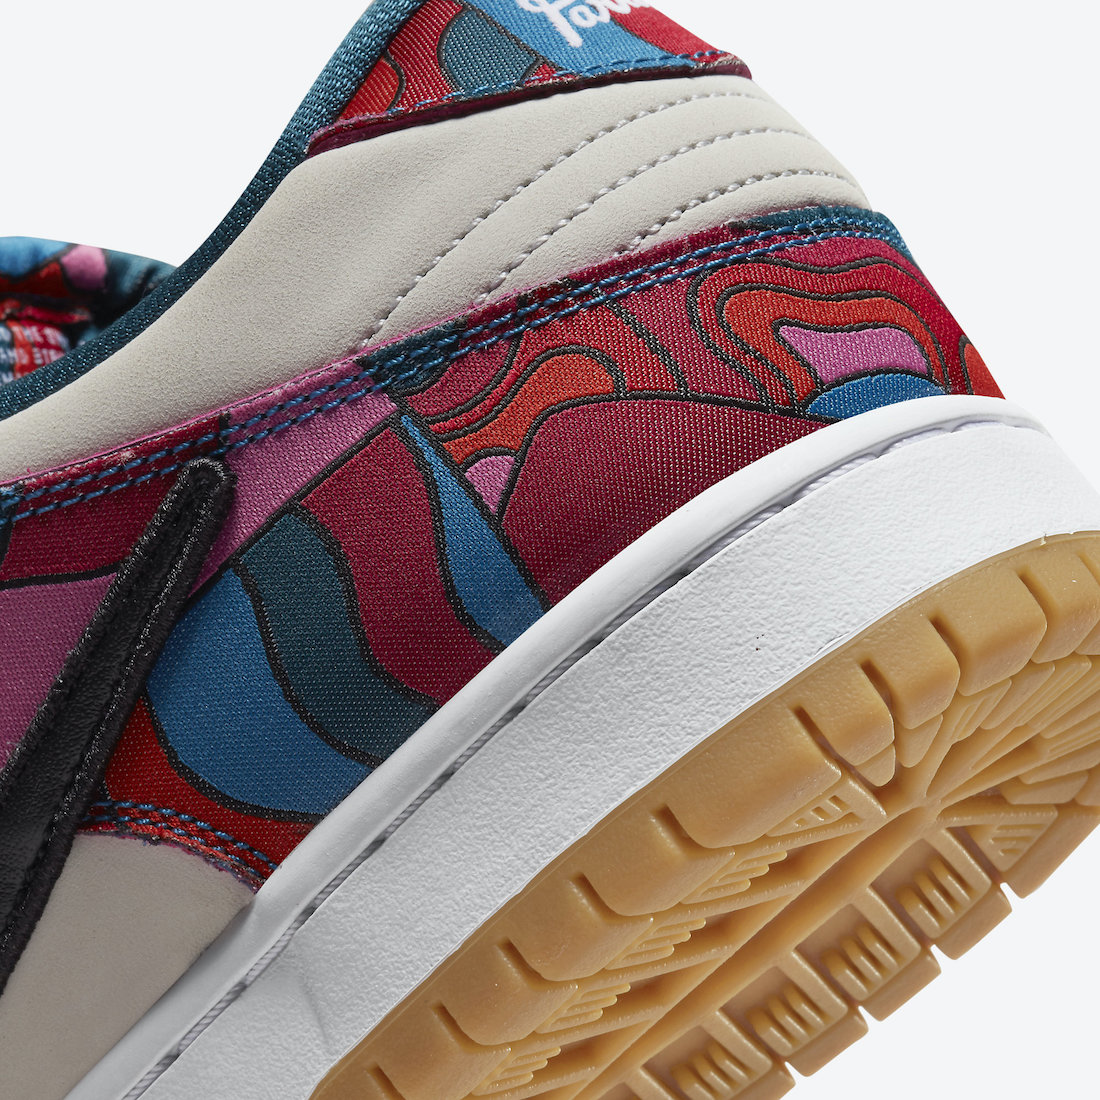 Parra Nike SB Dunk Low DH7695-600 Release Date Price